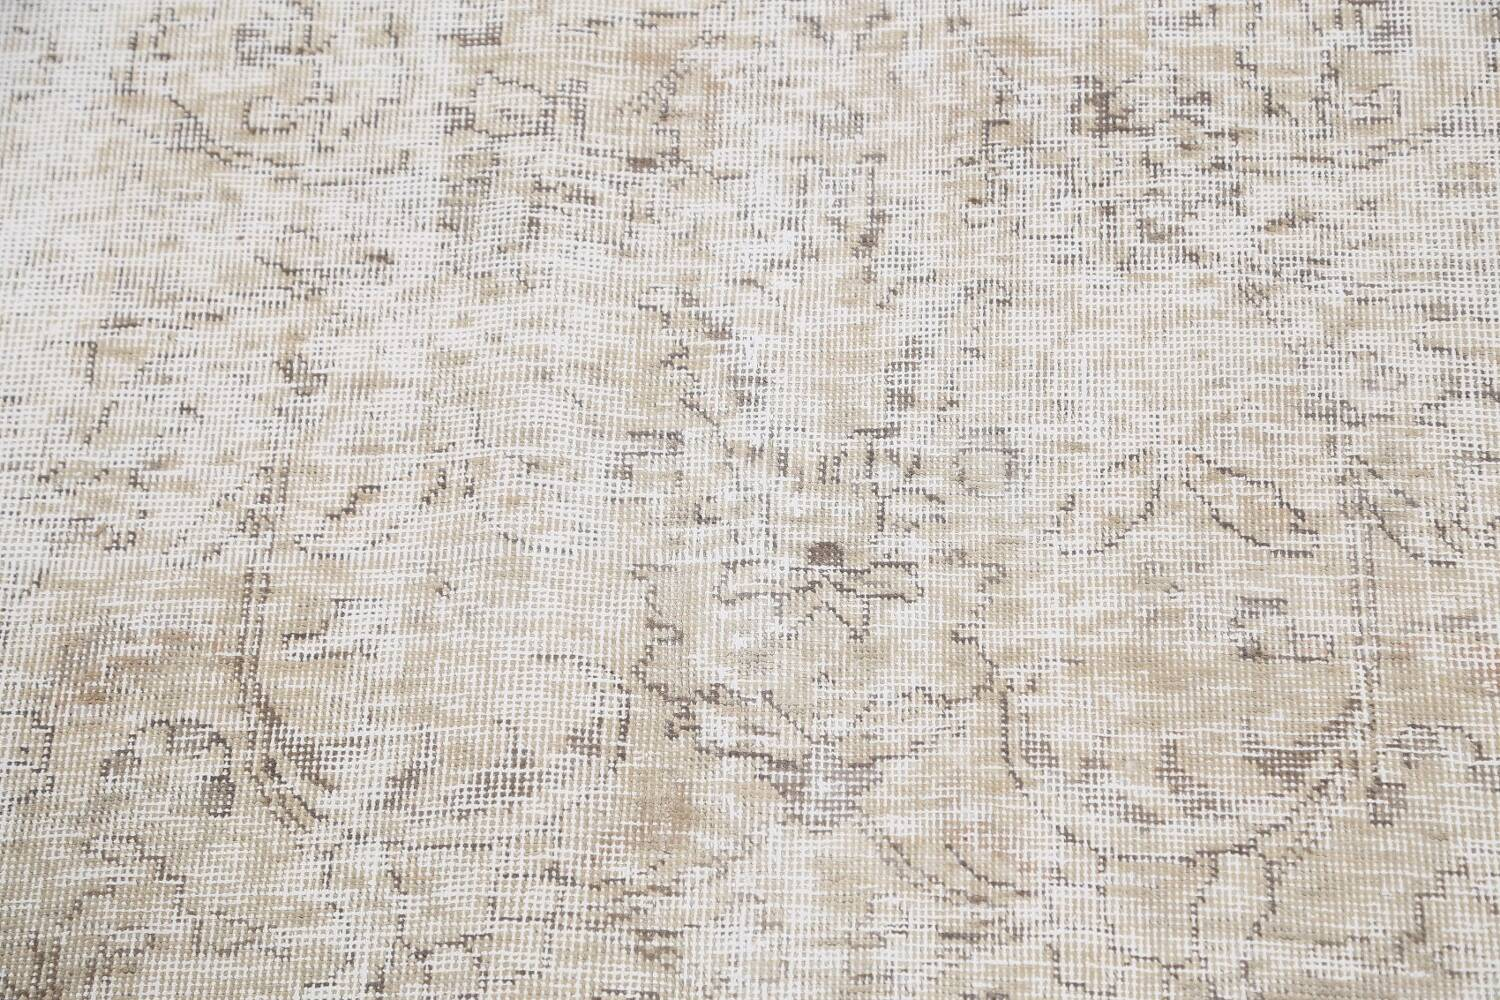 Antique Muted Vintage Distressed Oriental Area Rug 10x11 image 10